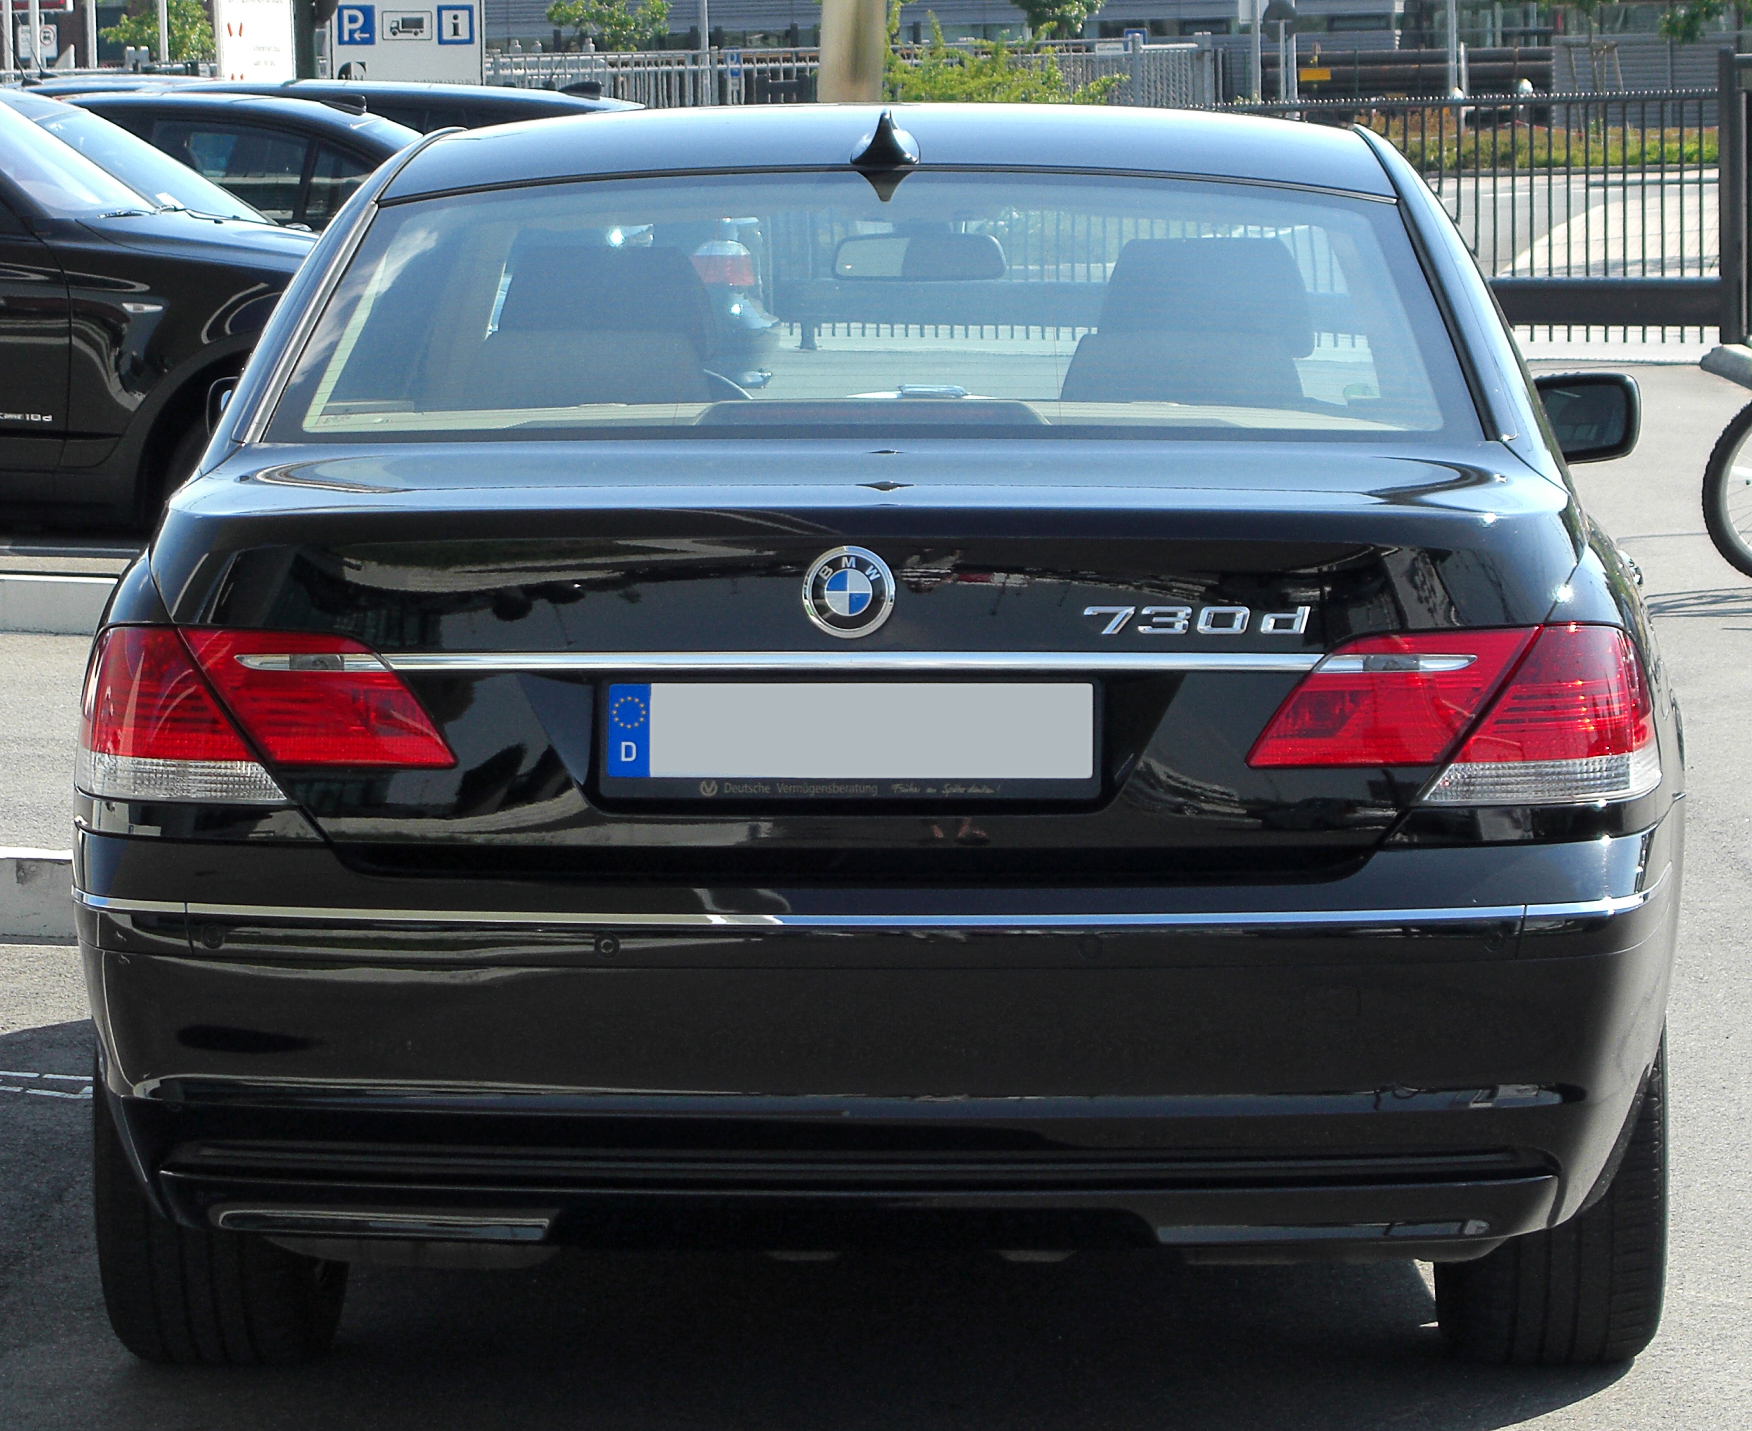 File:BMW 730d (E65) Facelift rear-1 20100718.jpg